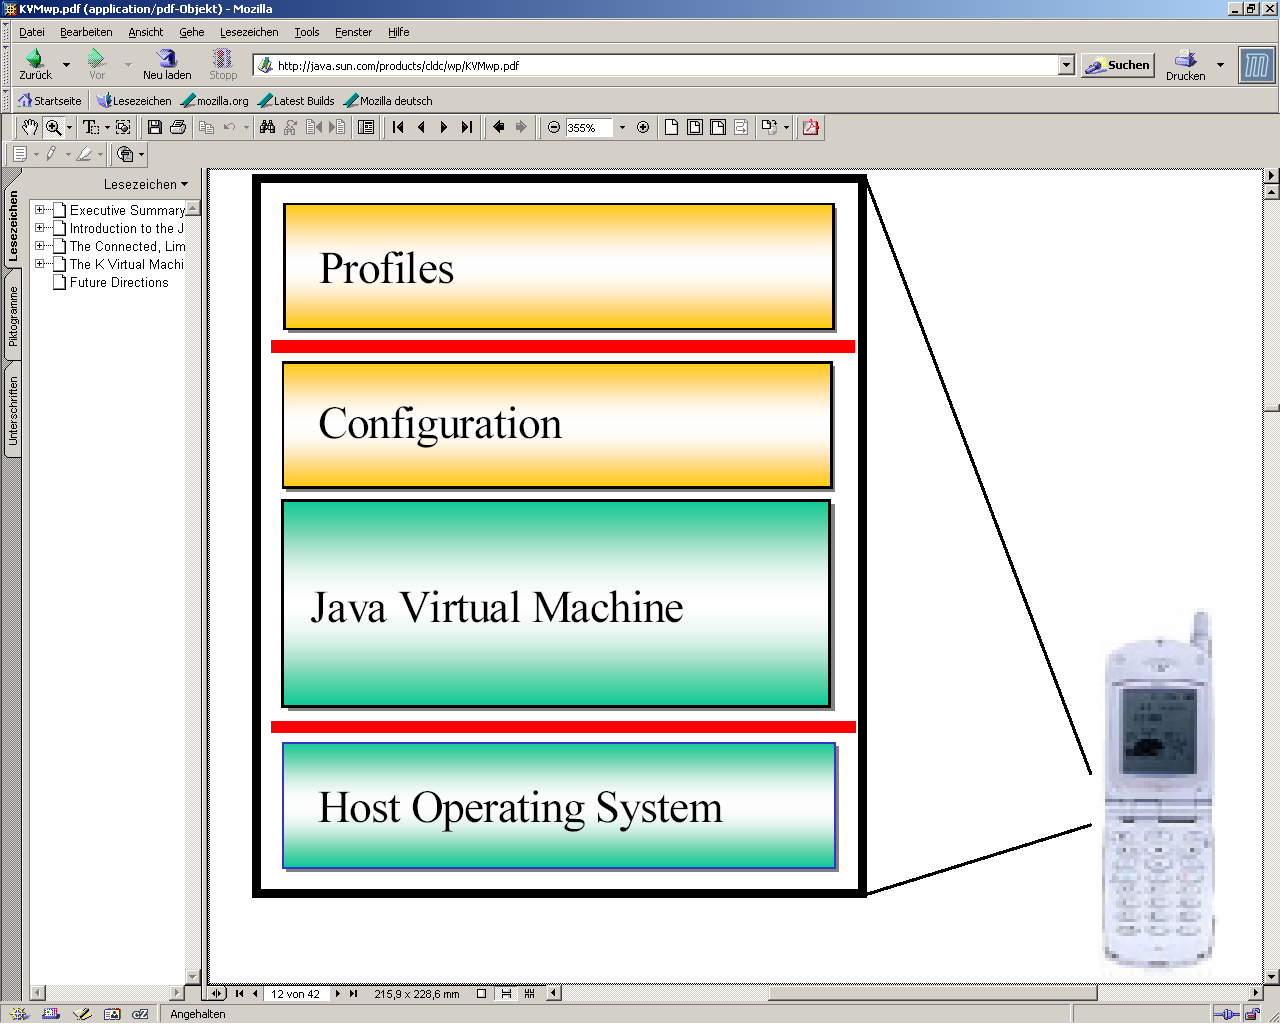 Java Virtual Machine: implementation of a Java VM, customized for a particular device s host OS and supports a particular J2ME configuration.